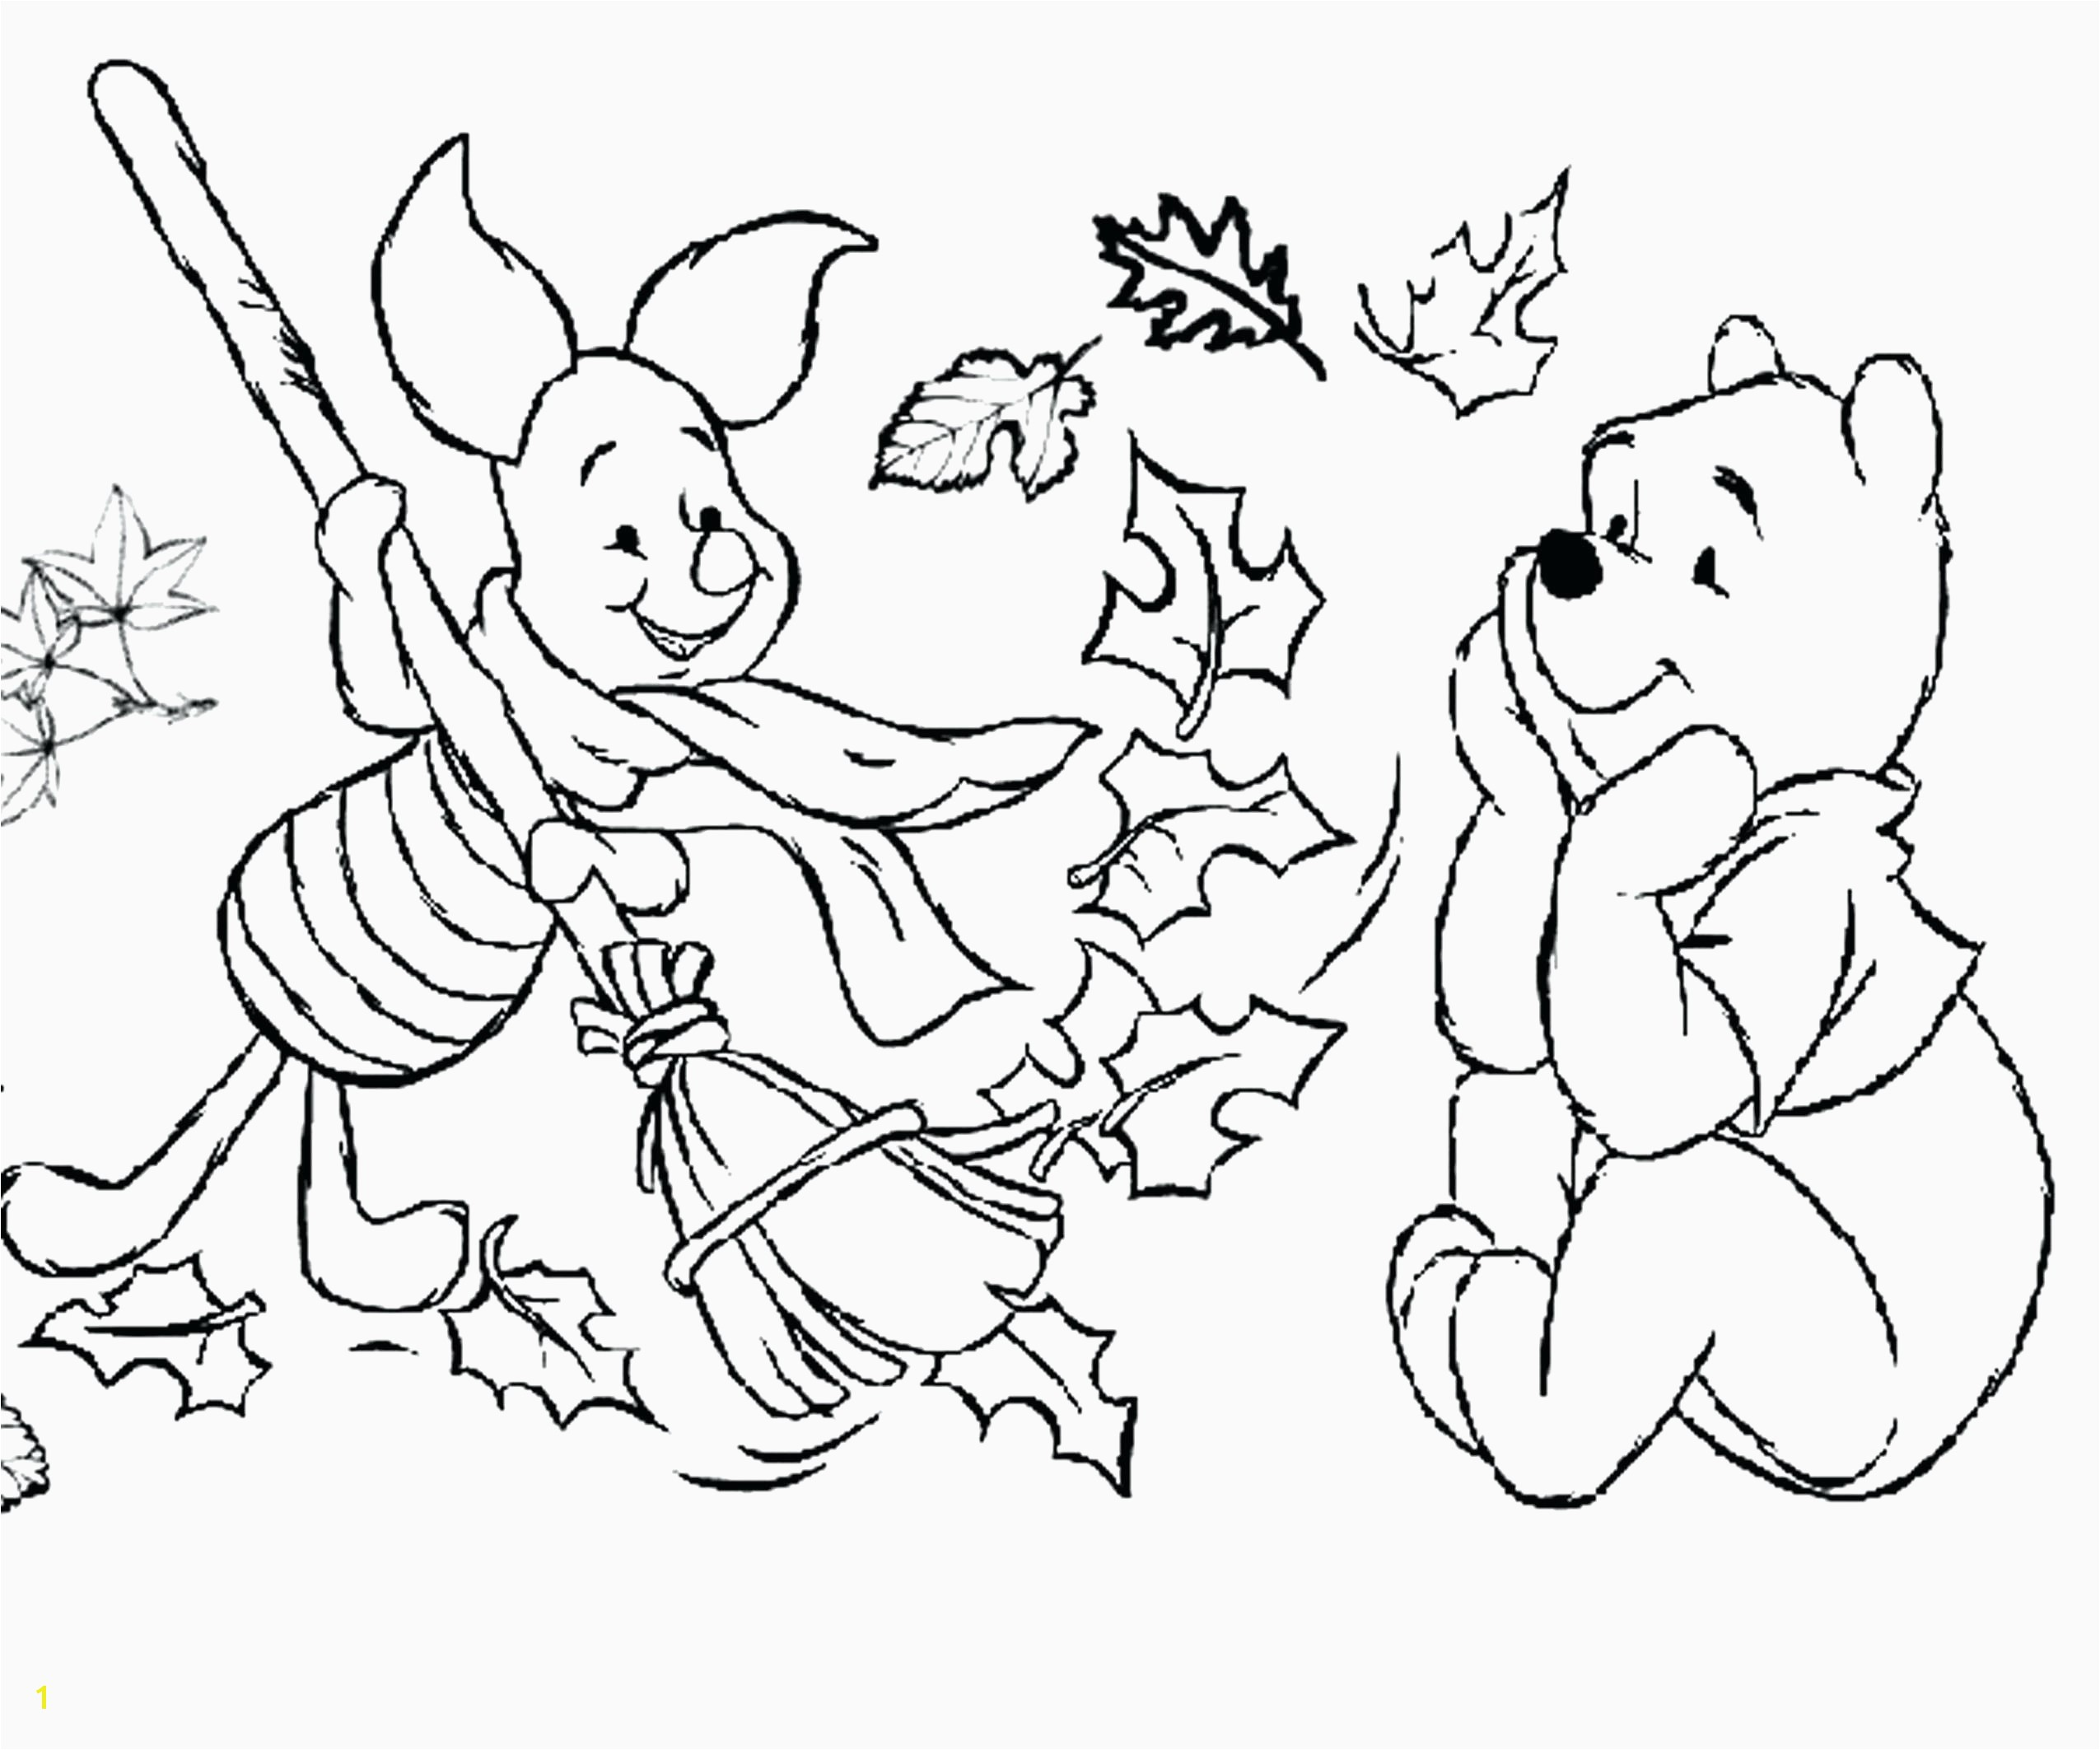 Coloring Animal Pages for Printing Fresh Print Coloring Sheet Collection